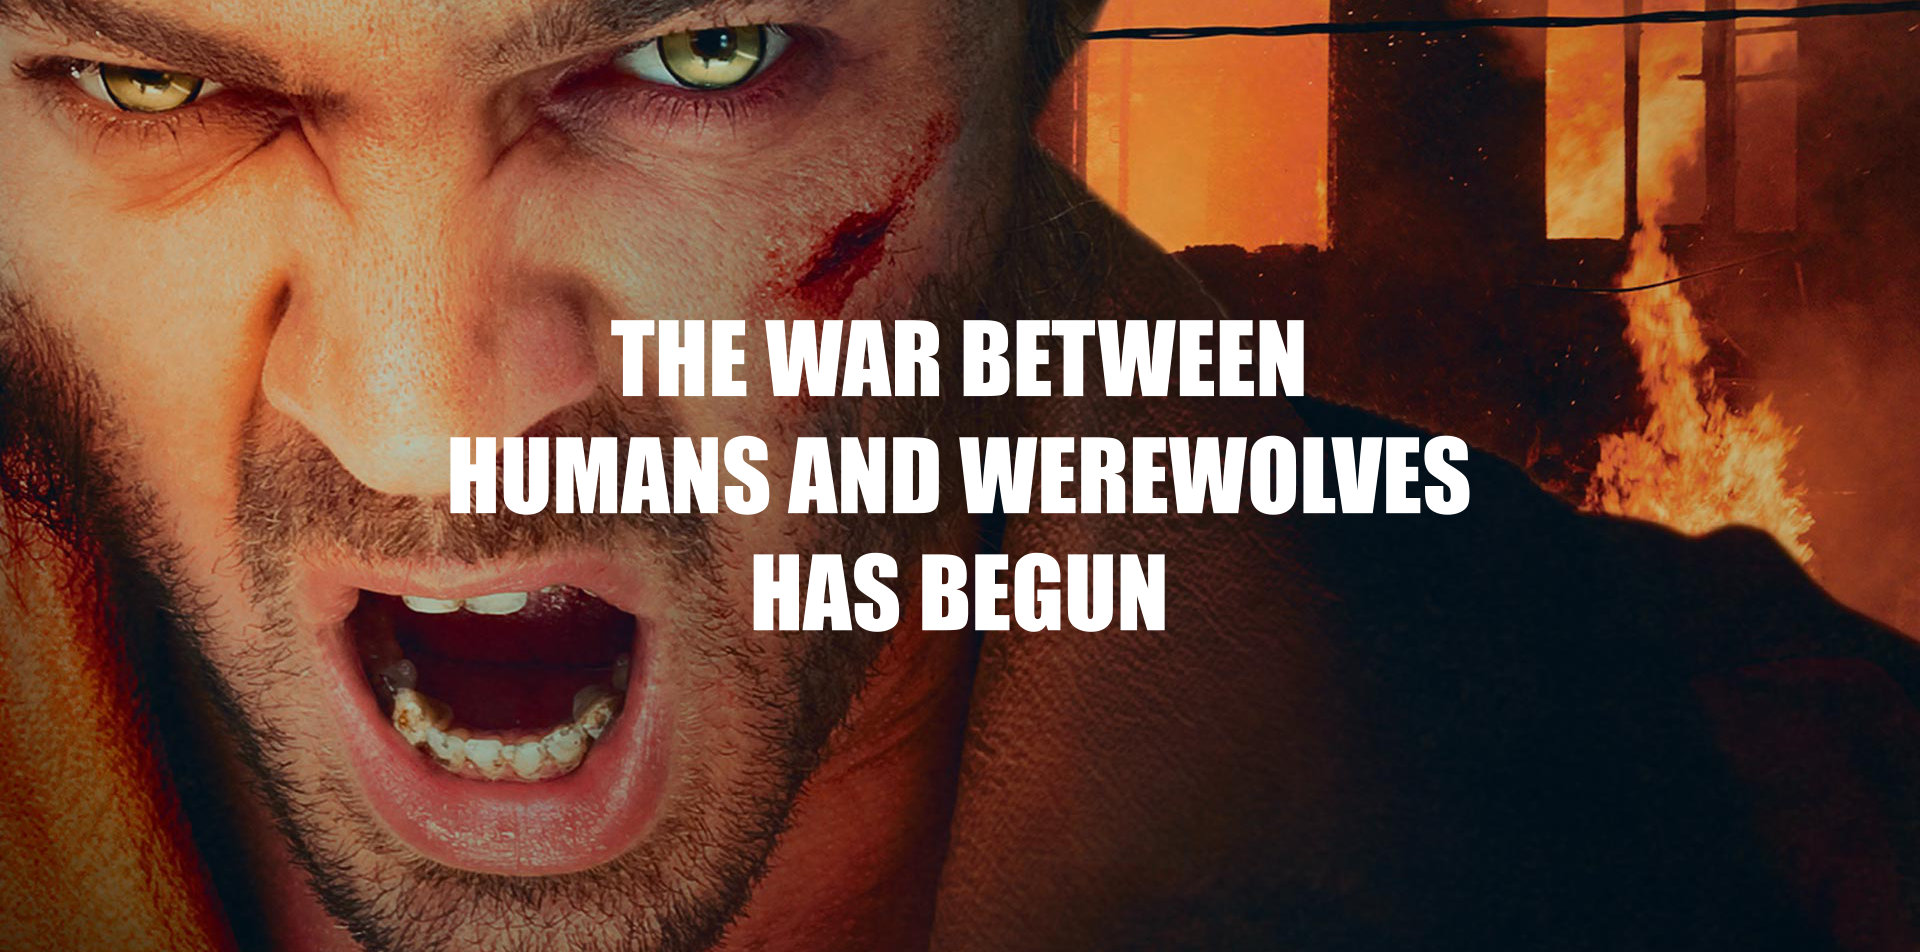 The war between humans and werewolves has begun